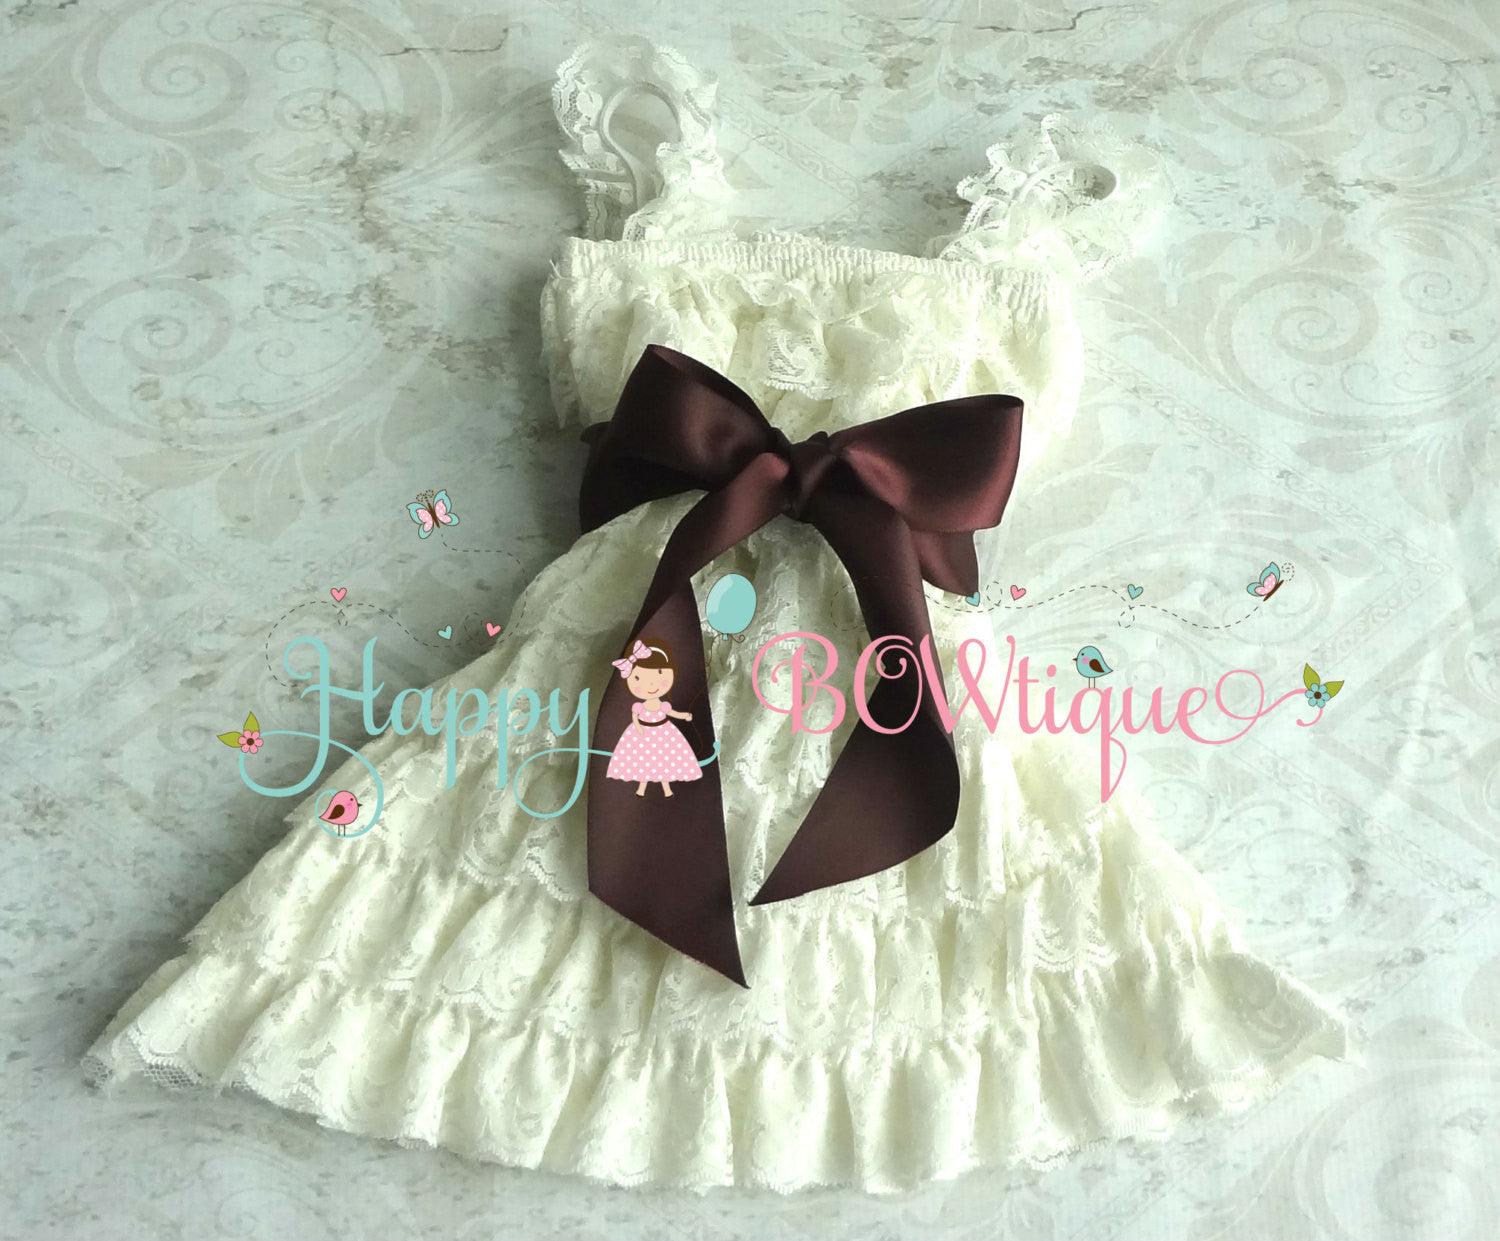 Dark Ivory Plum Bow Lace Dress - Happy BOWtique - children's clothing, Baby Girl clothing